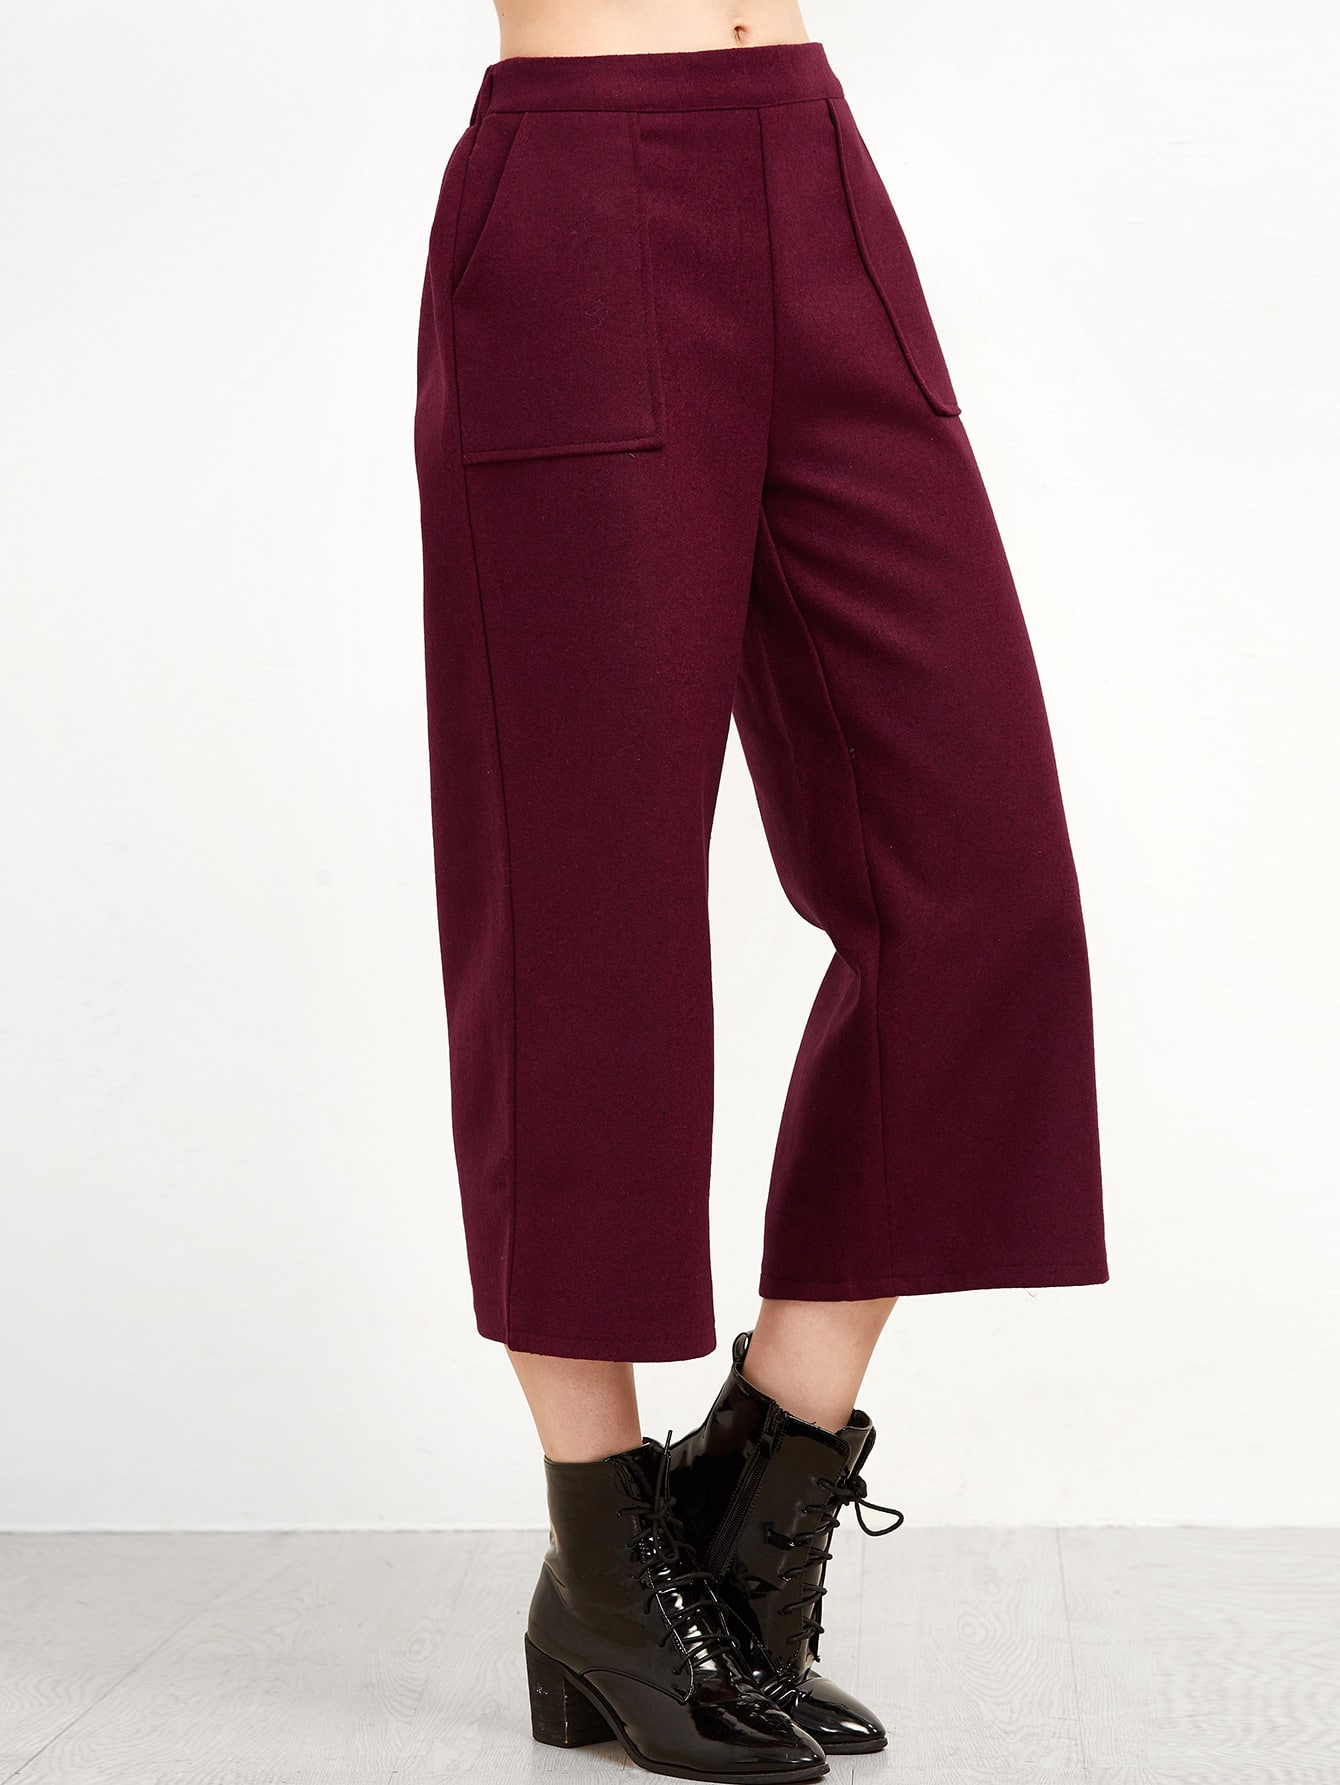 Burgundy Wide Leg Front Pockets Pants pants161004101